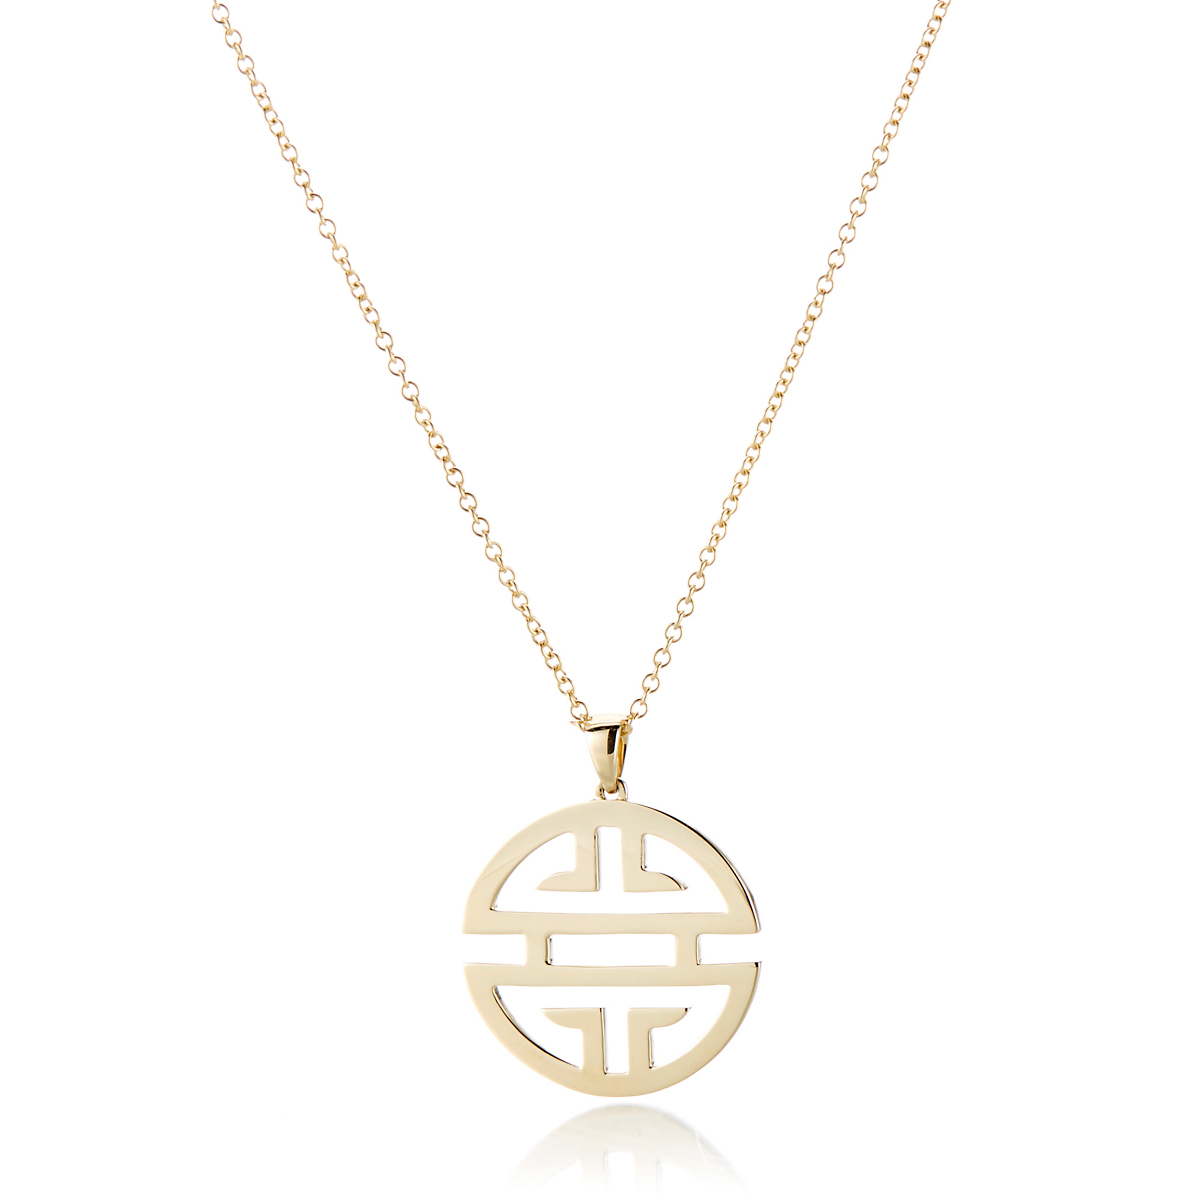 Gump's Shou Gold Large Pendant Necklace